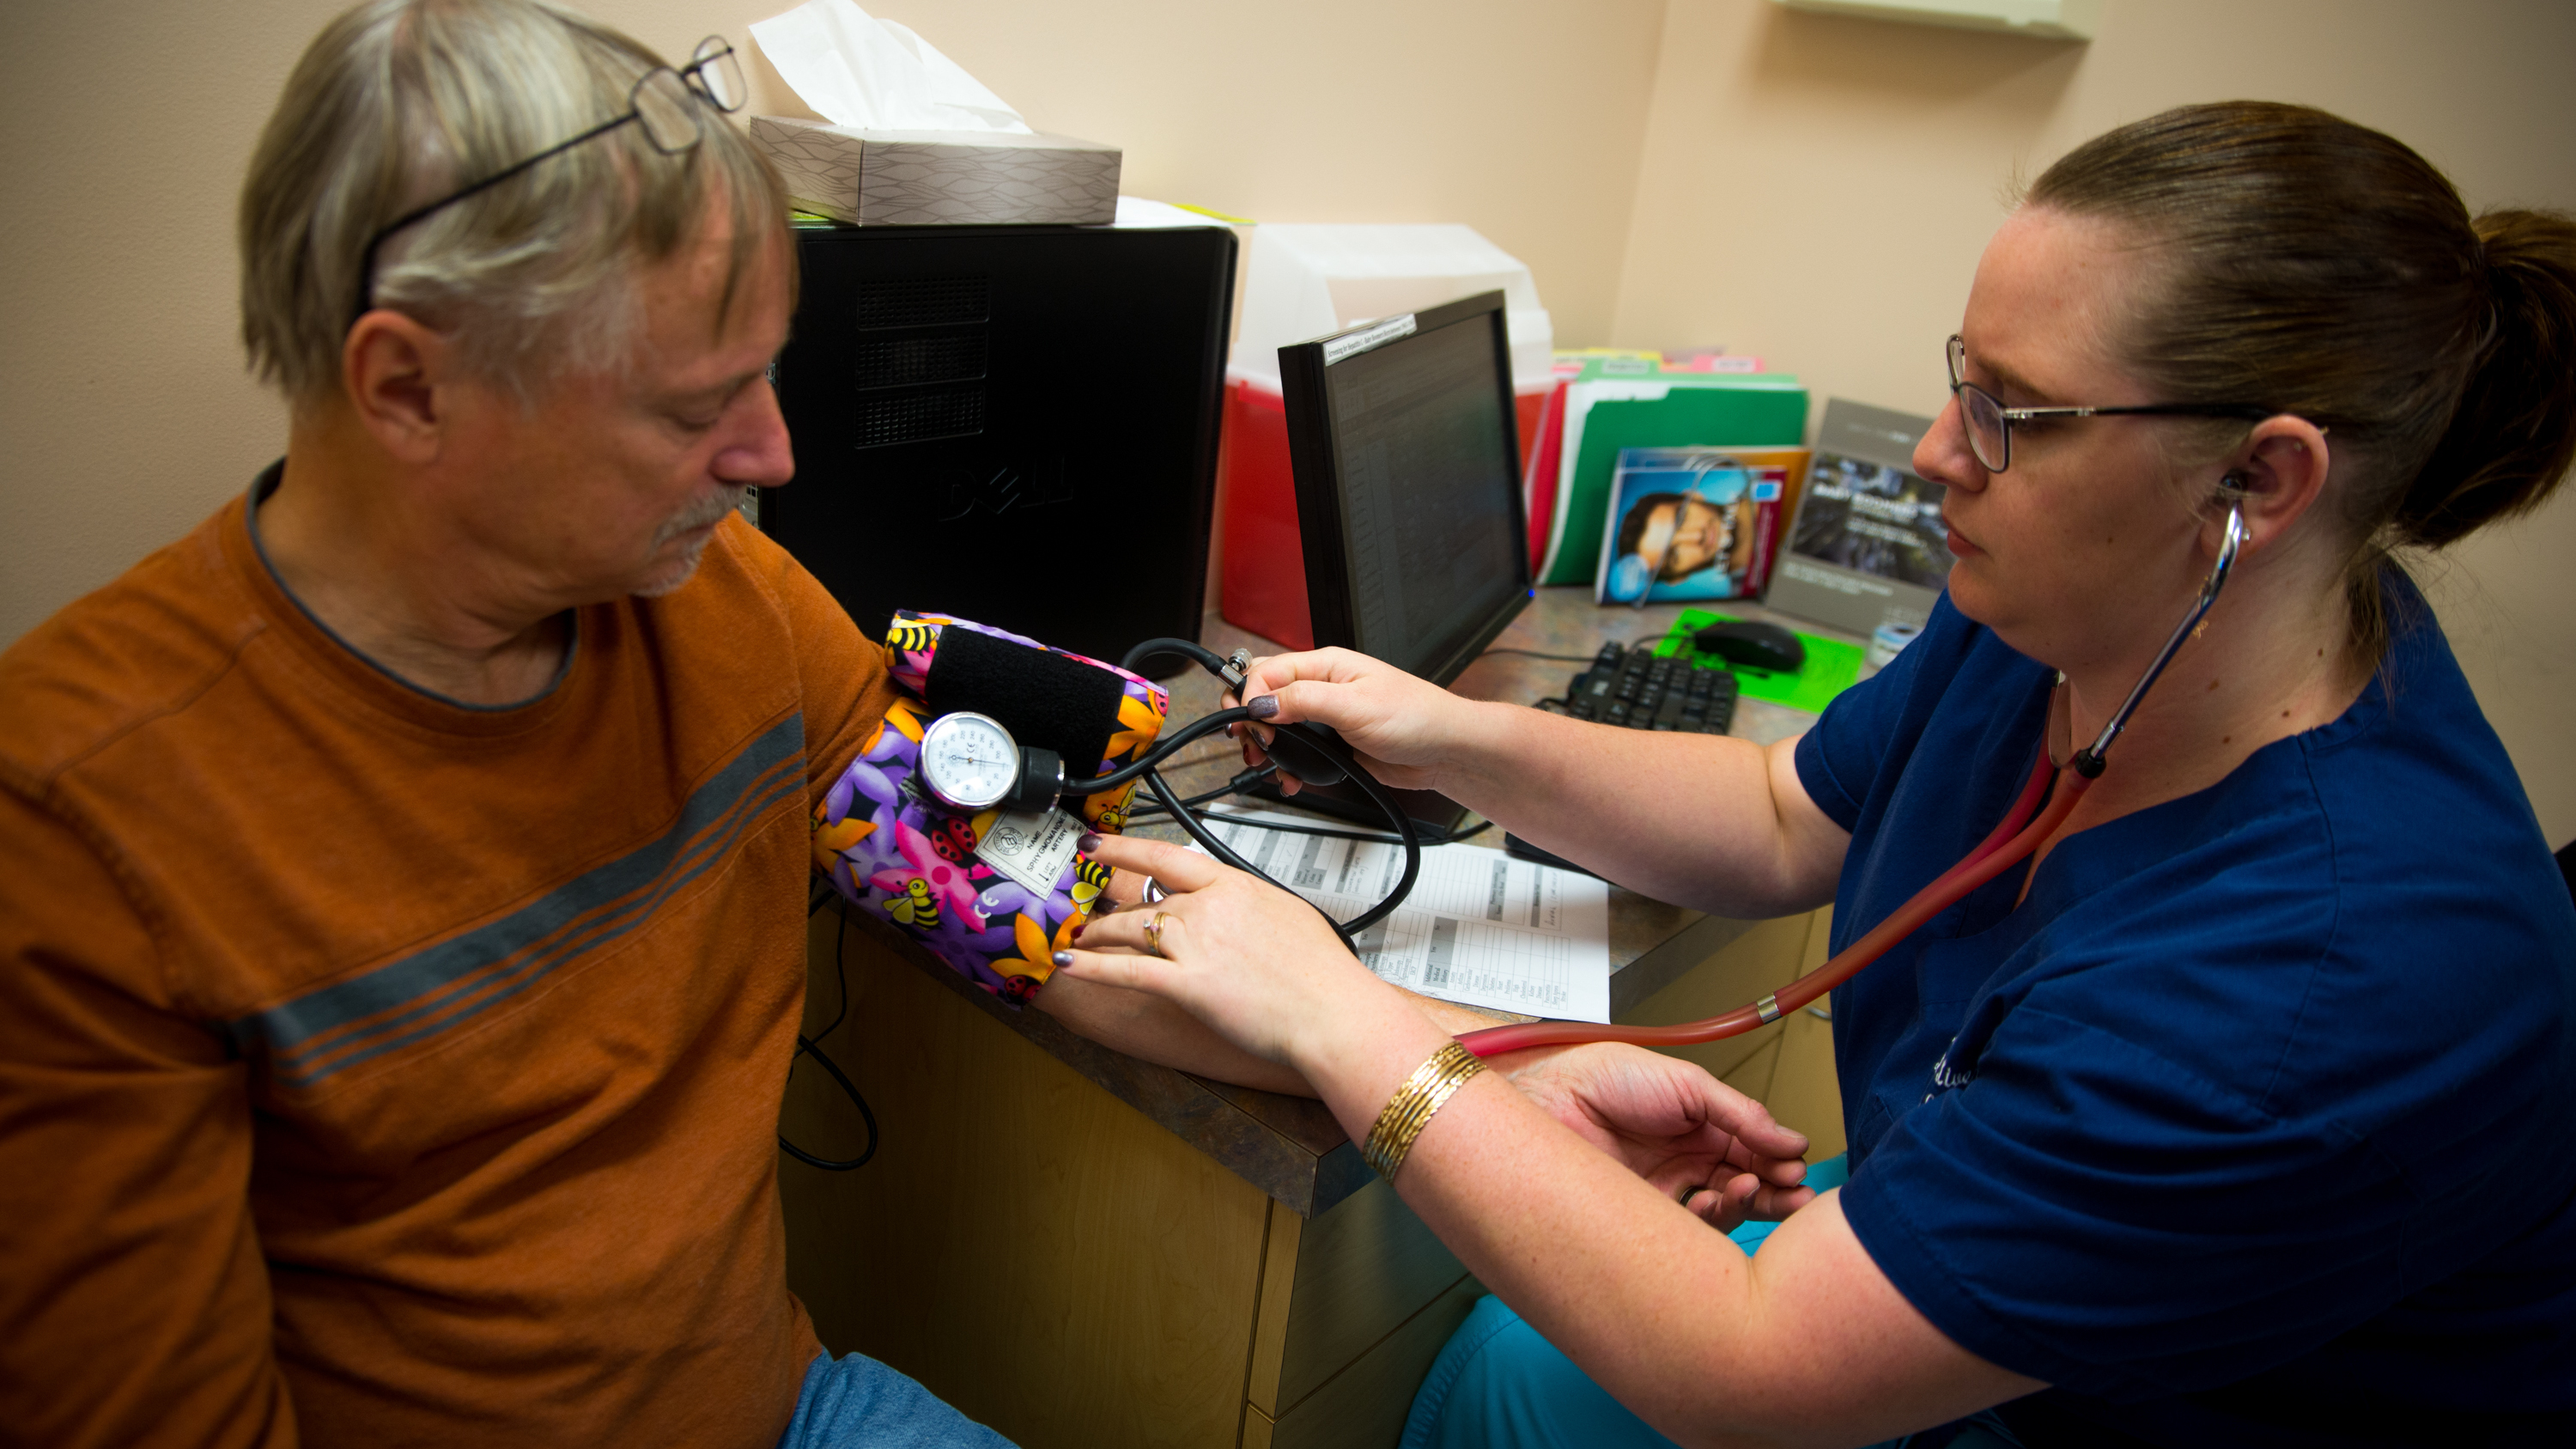 npr.org - Richard Harris - Odds Are They're Taking Your Blood Pressure All Wrong